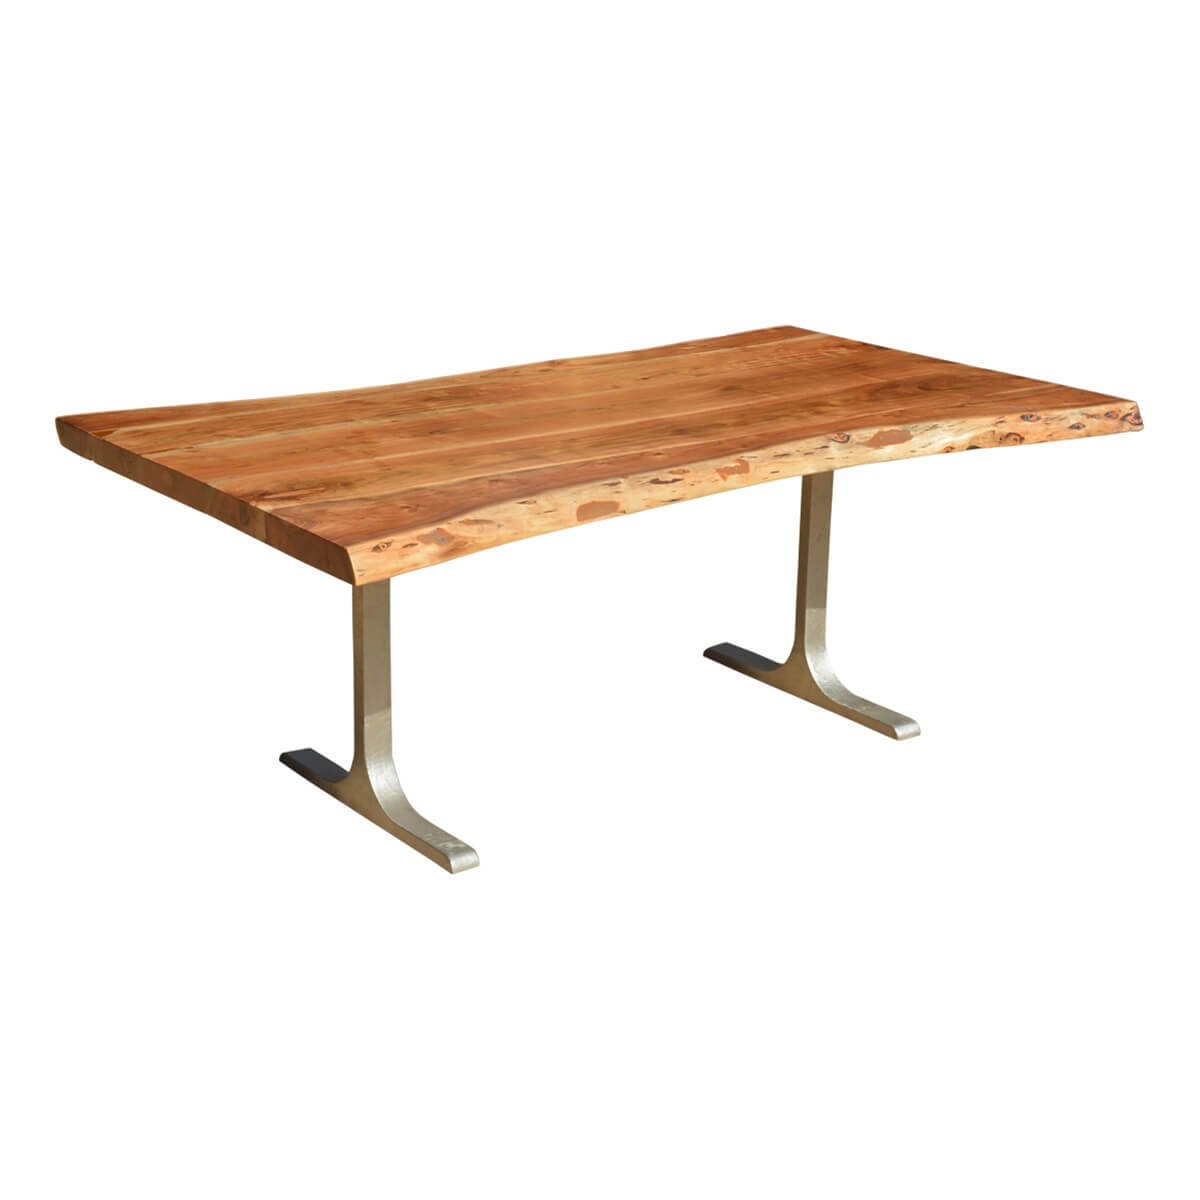 Solid Wood amp Iron Base Santa Fe Live Edge Dining Table : 69982 from www.sierralivingconcepts.com size 1200 x 1200 jpeg 162kB